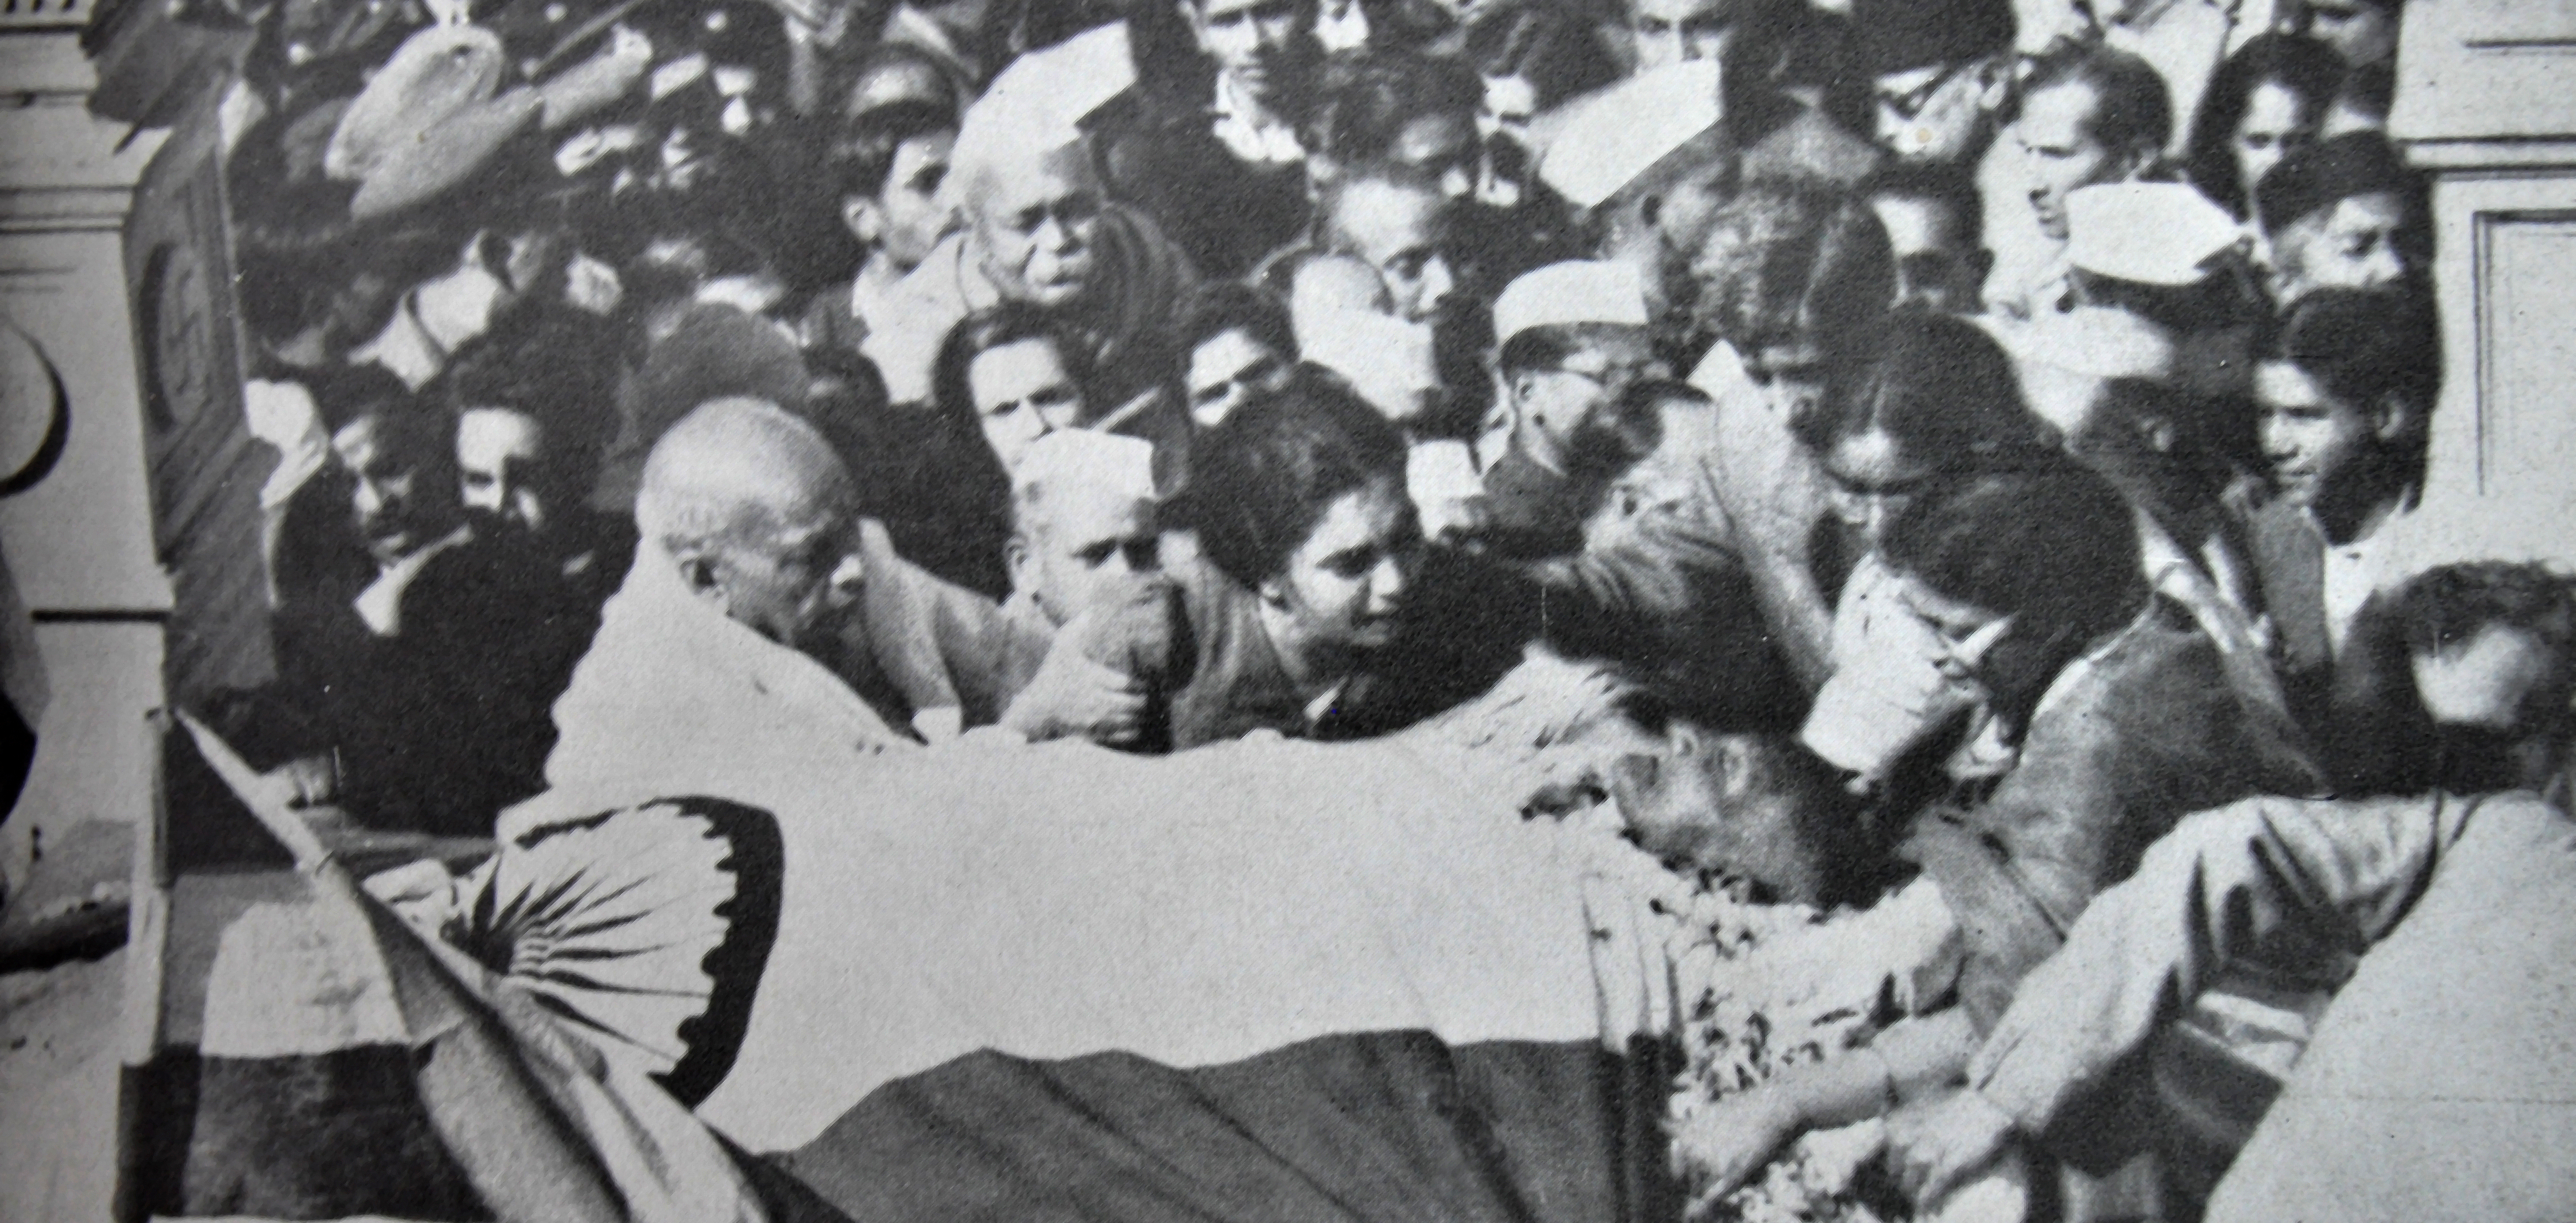 At Mahatma Gandhi's death